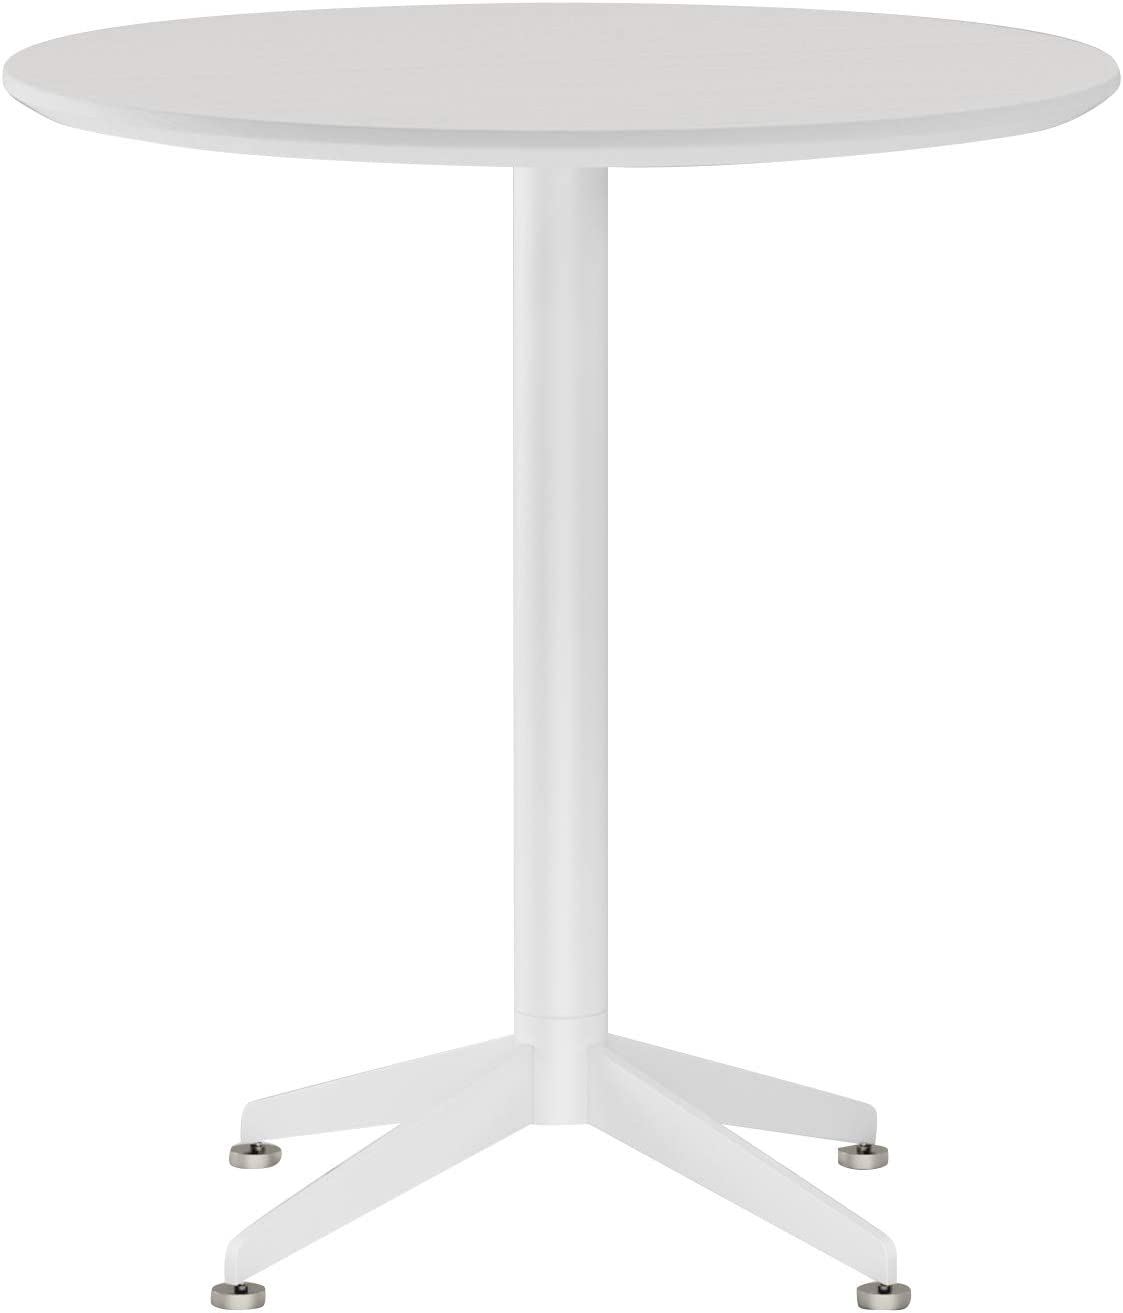 White Dining Table Round Conference Cof San Diego Mall Small Miami Mall Office